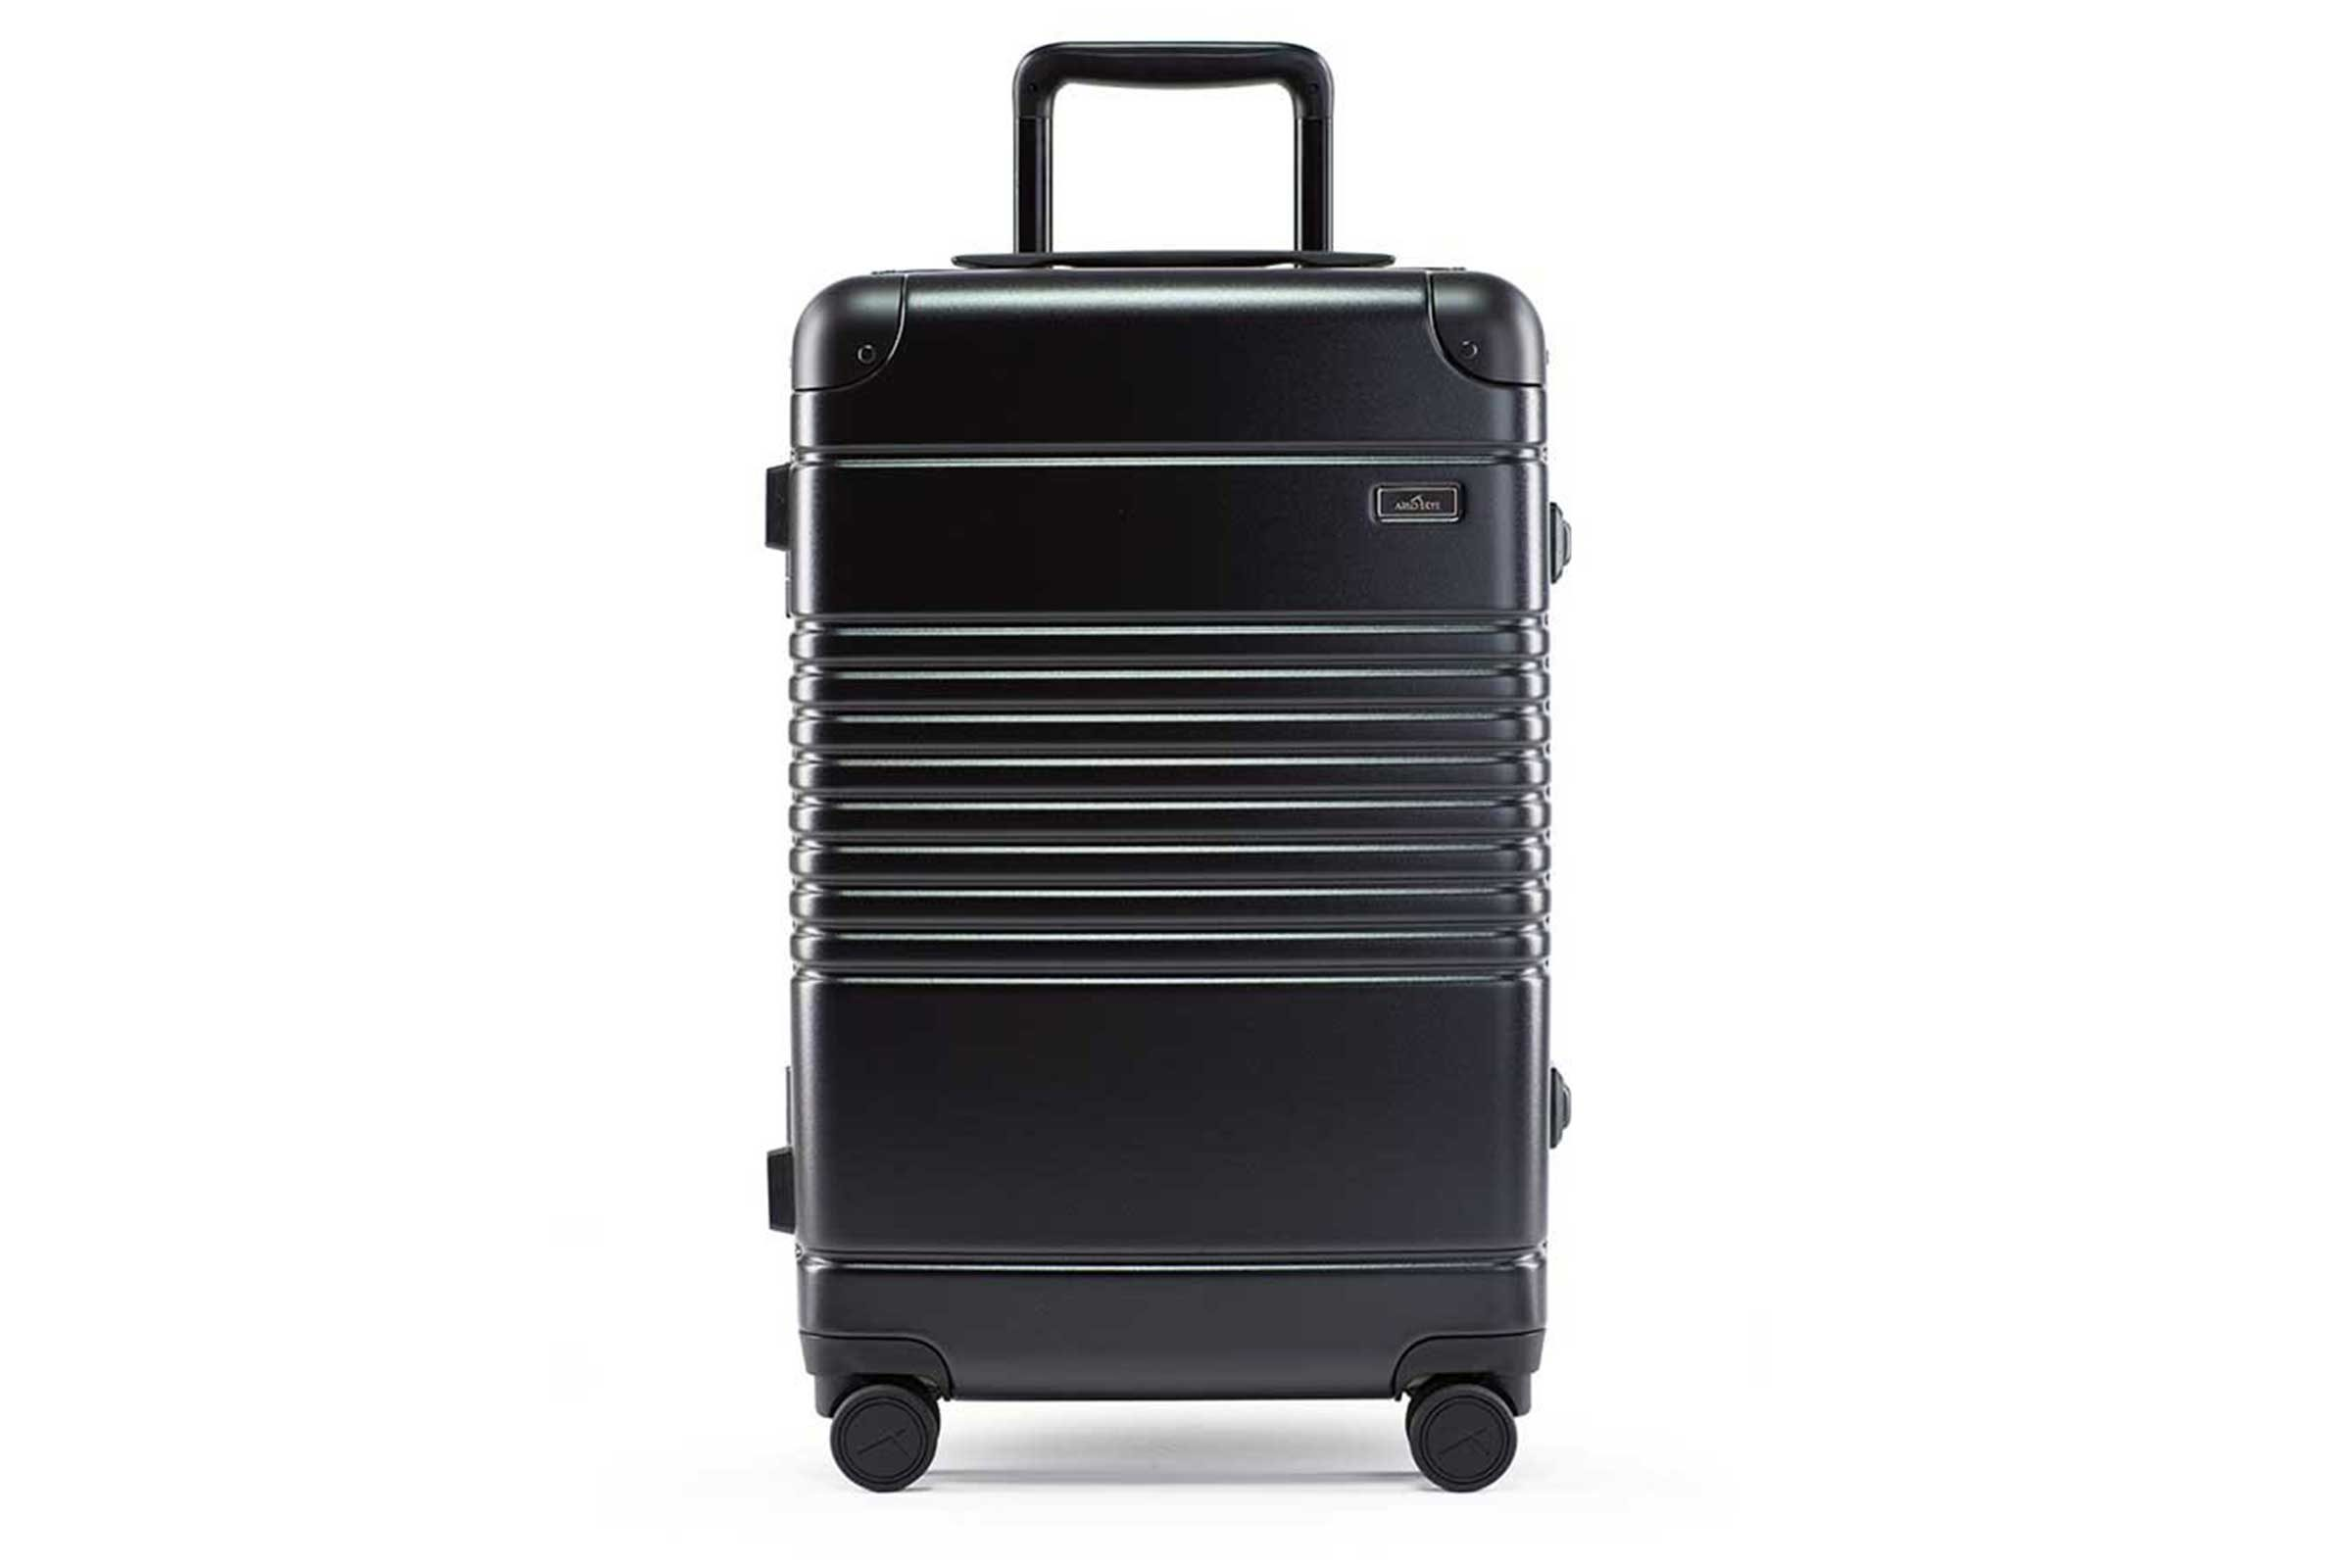 01_The-Polycarbonate-Carry-On-Max-by-Arlo-